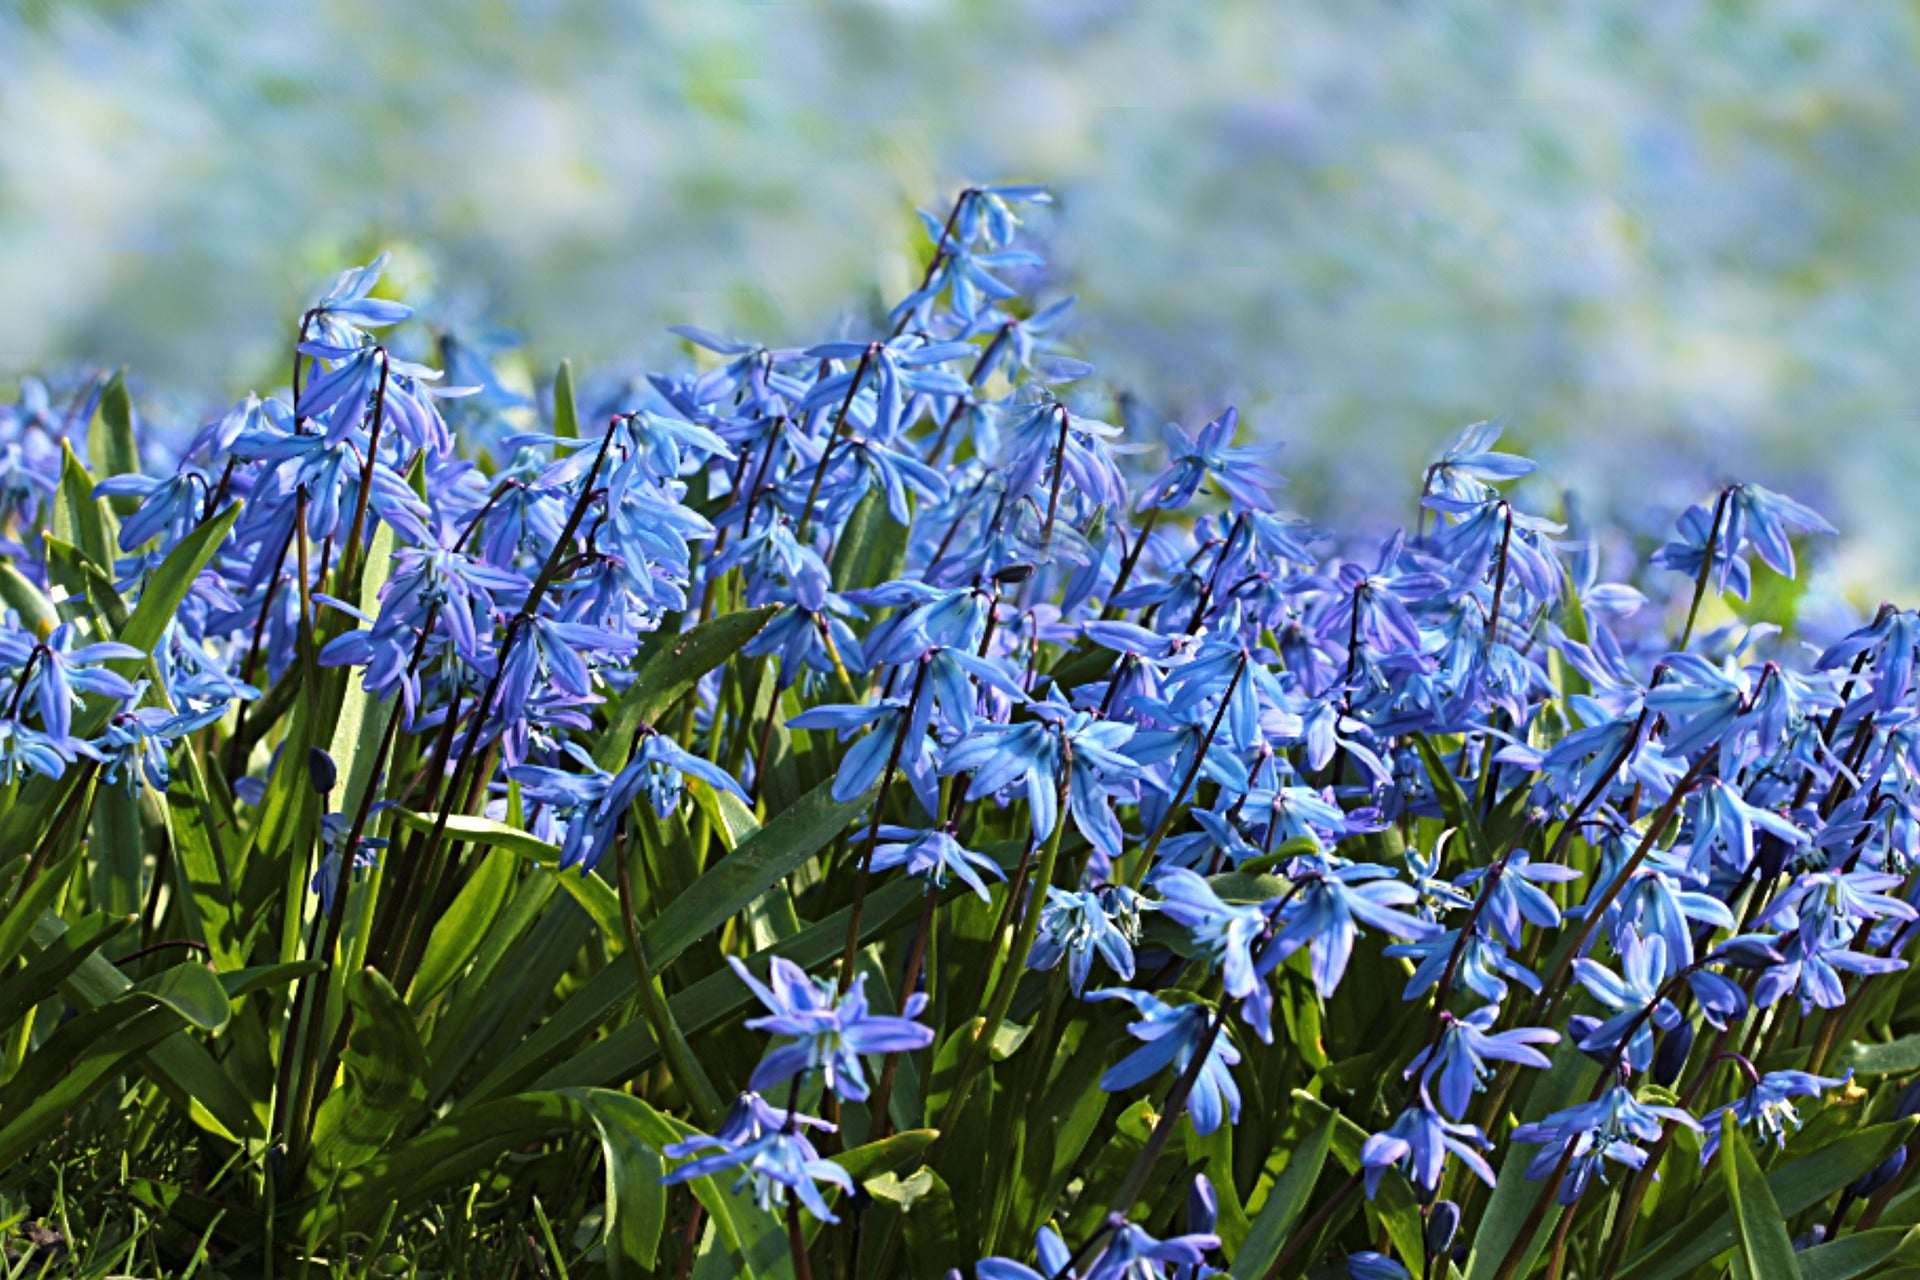 Growing Guides: How to Grow Scilla (Siberian Squill) bulbs